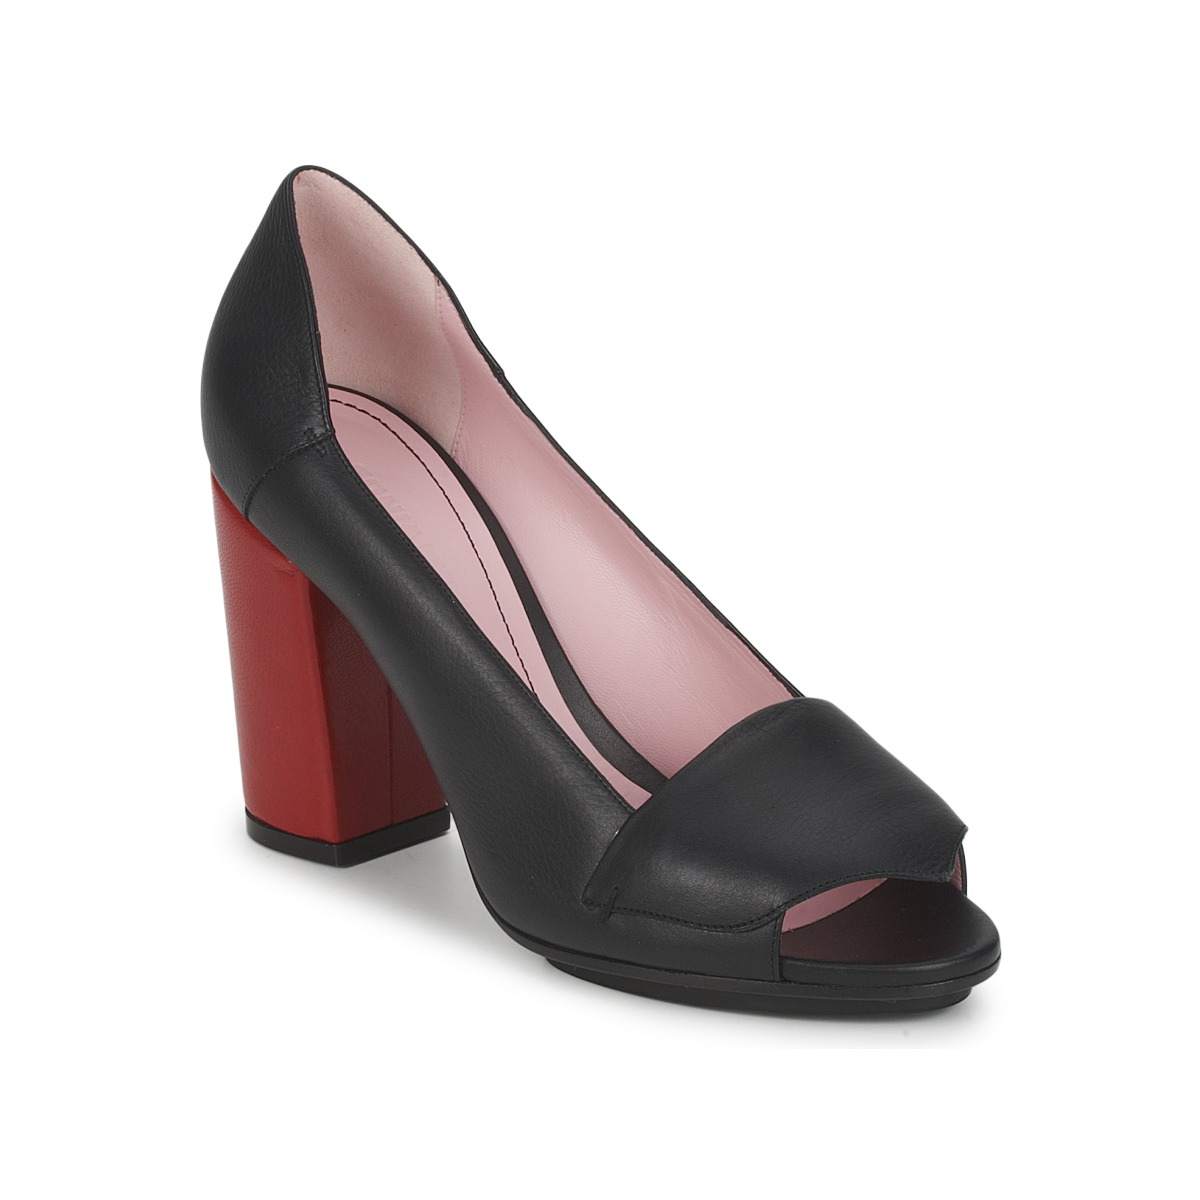 Court-shoes Sonia Rykiel 657940 Black / Red